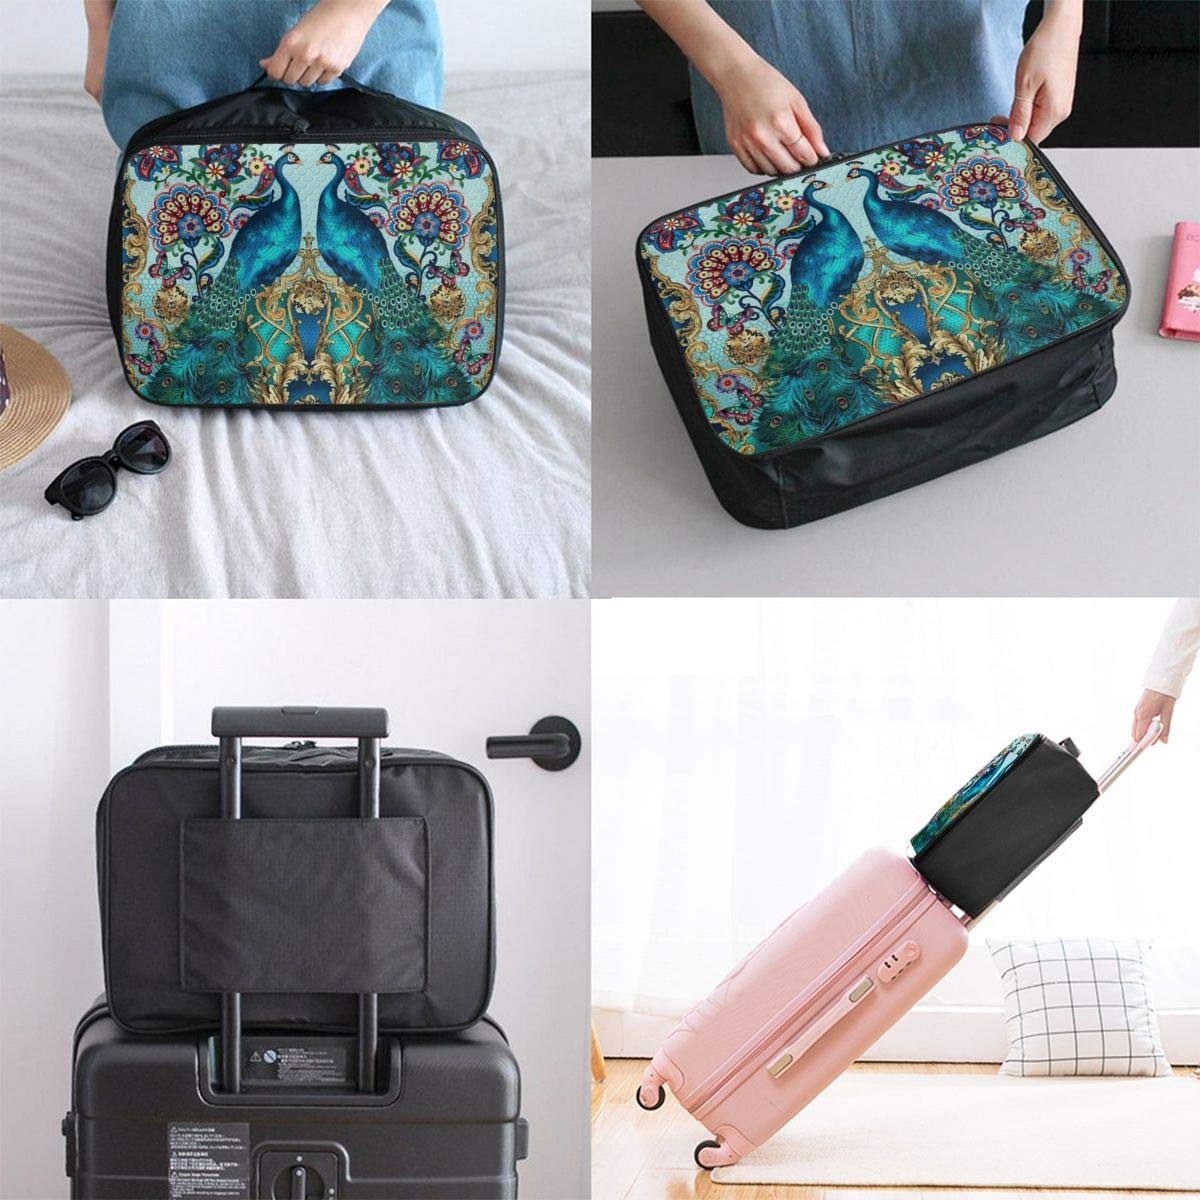 Elegant Peacock Couple King And Queen Travel Lightweight Waterproof Folding Storage Portable Luggage Duffle Tote Bag Large Capacity In Trolley Handle Bags 6x11x15 Inch